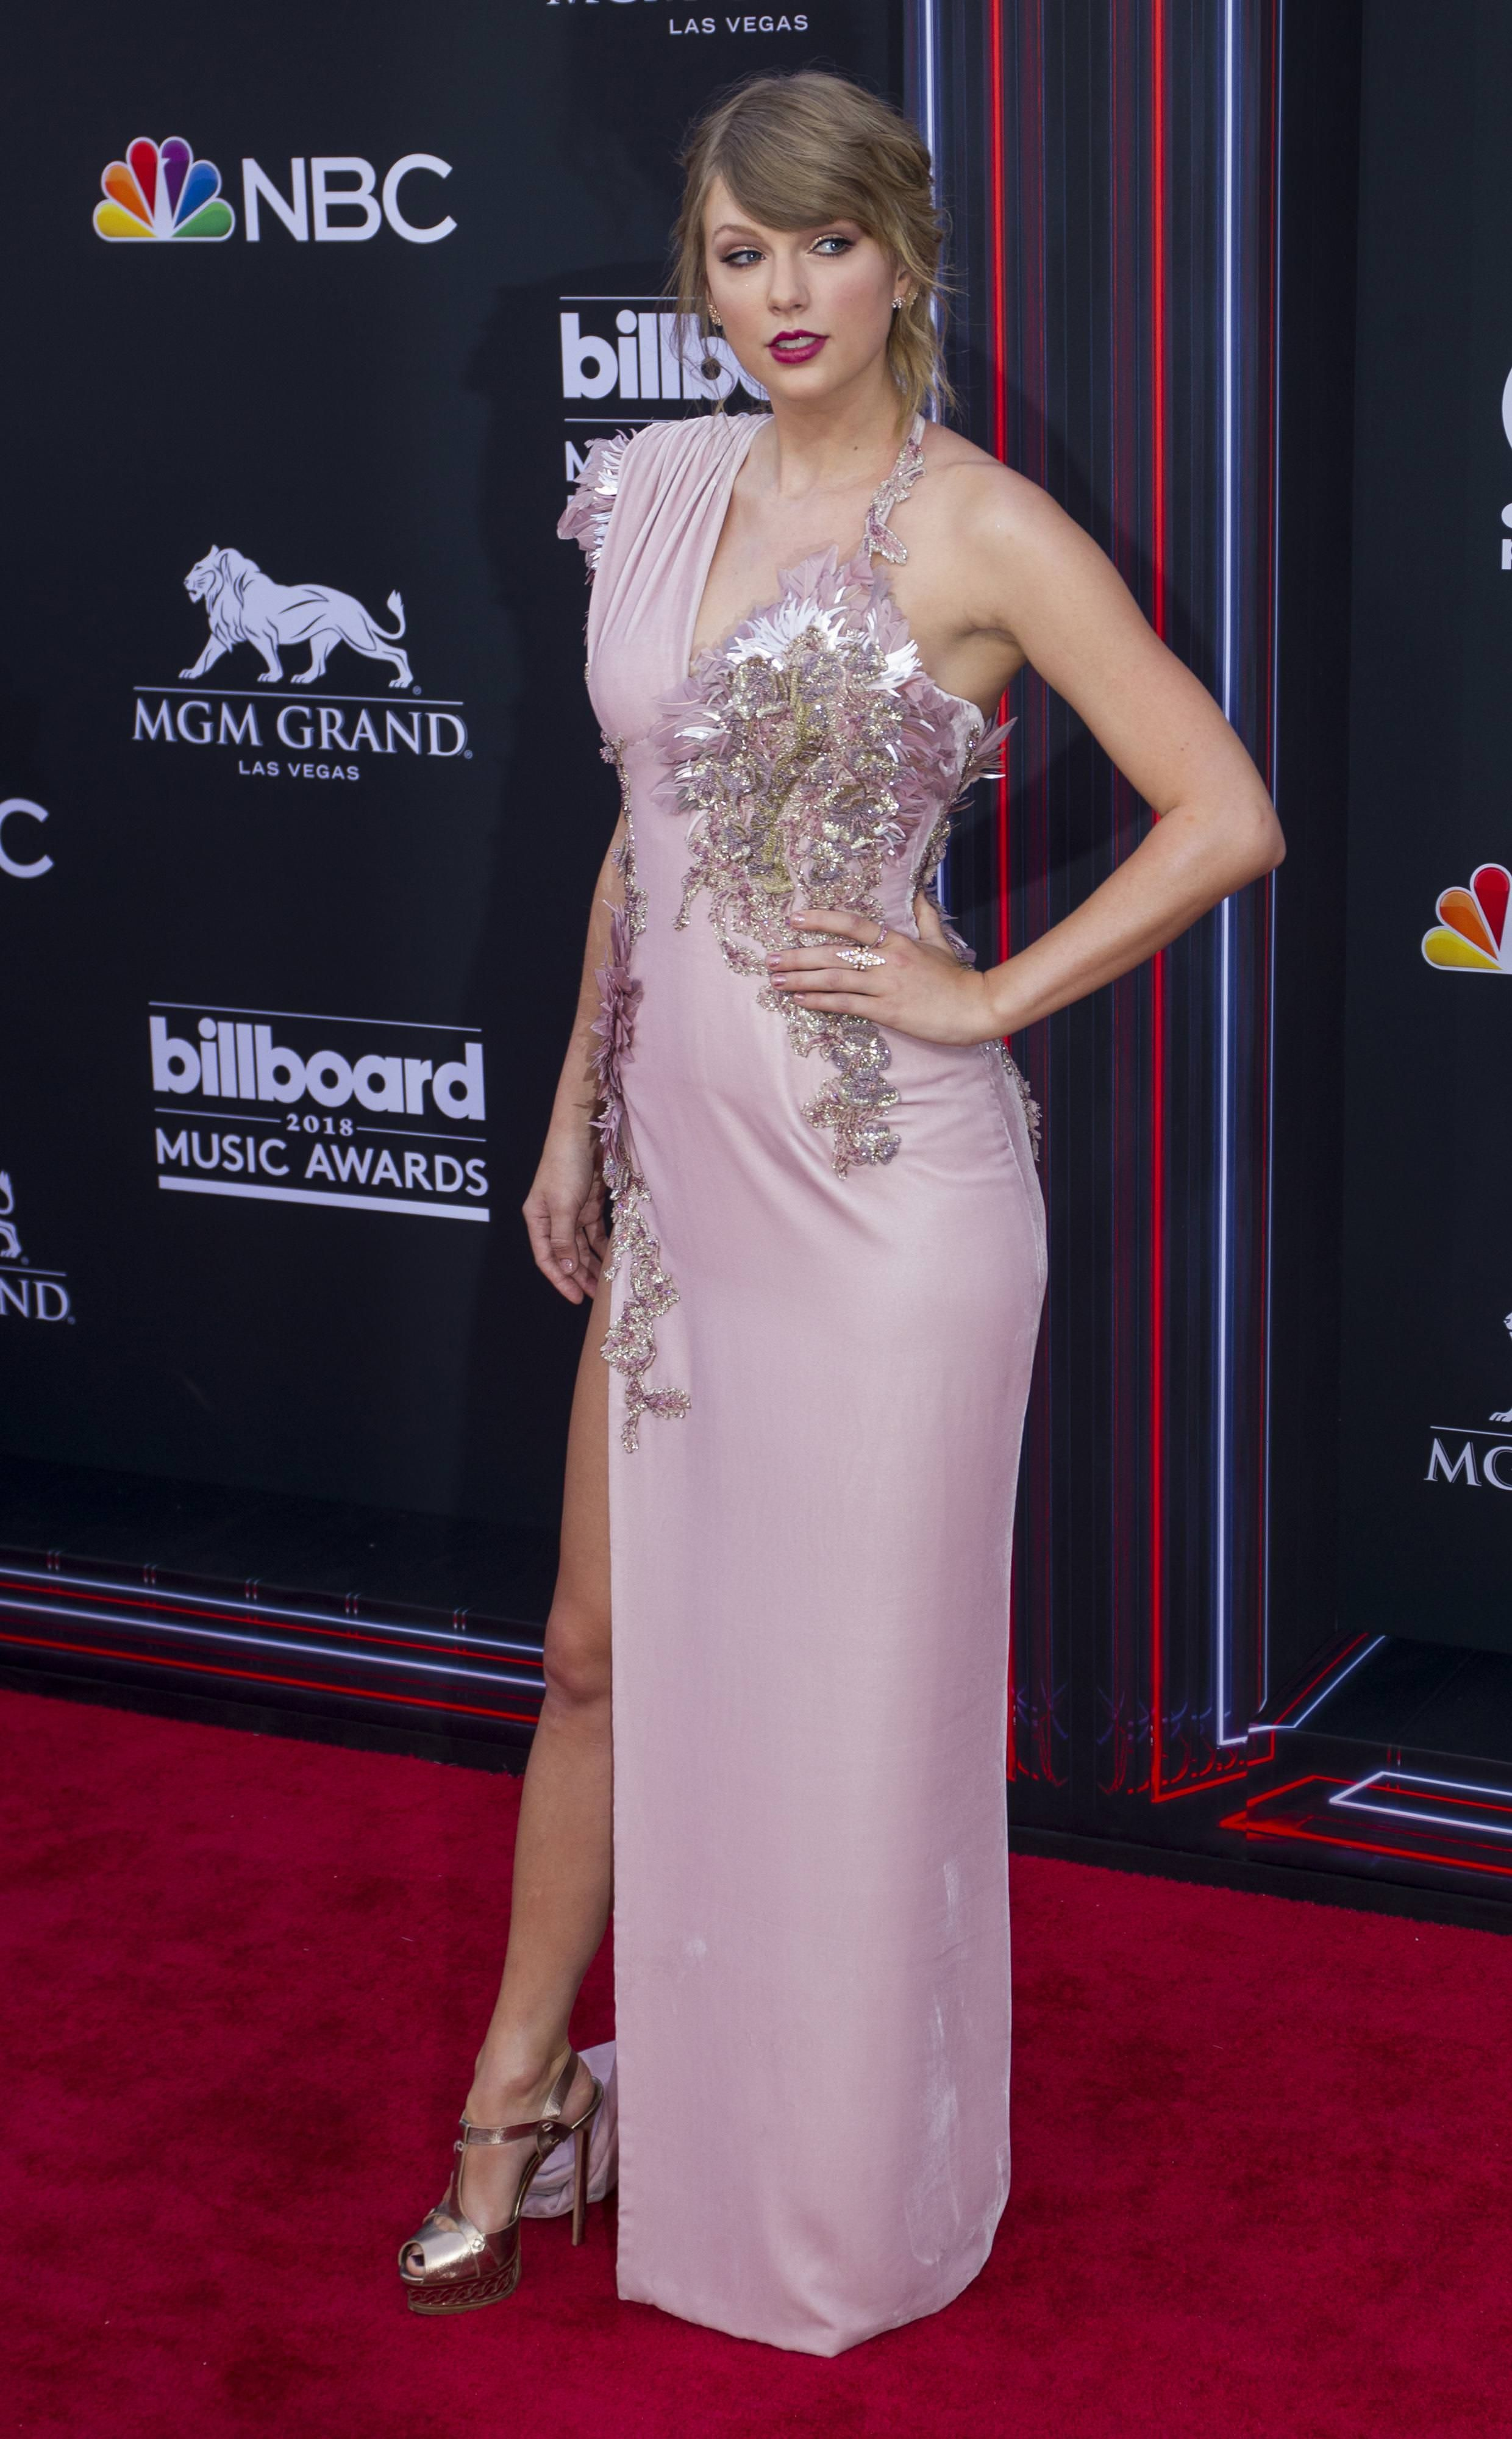 Taylor Swift BBMA 2018. | Taylor swift outfits, Taylor ...